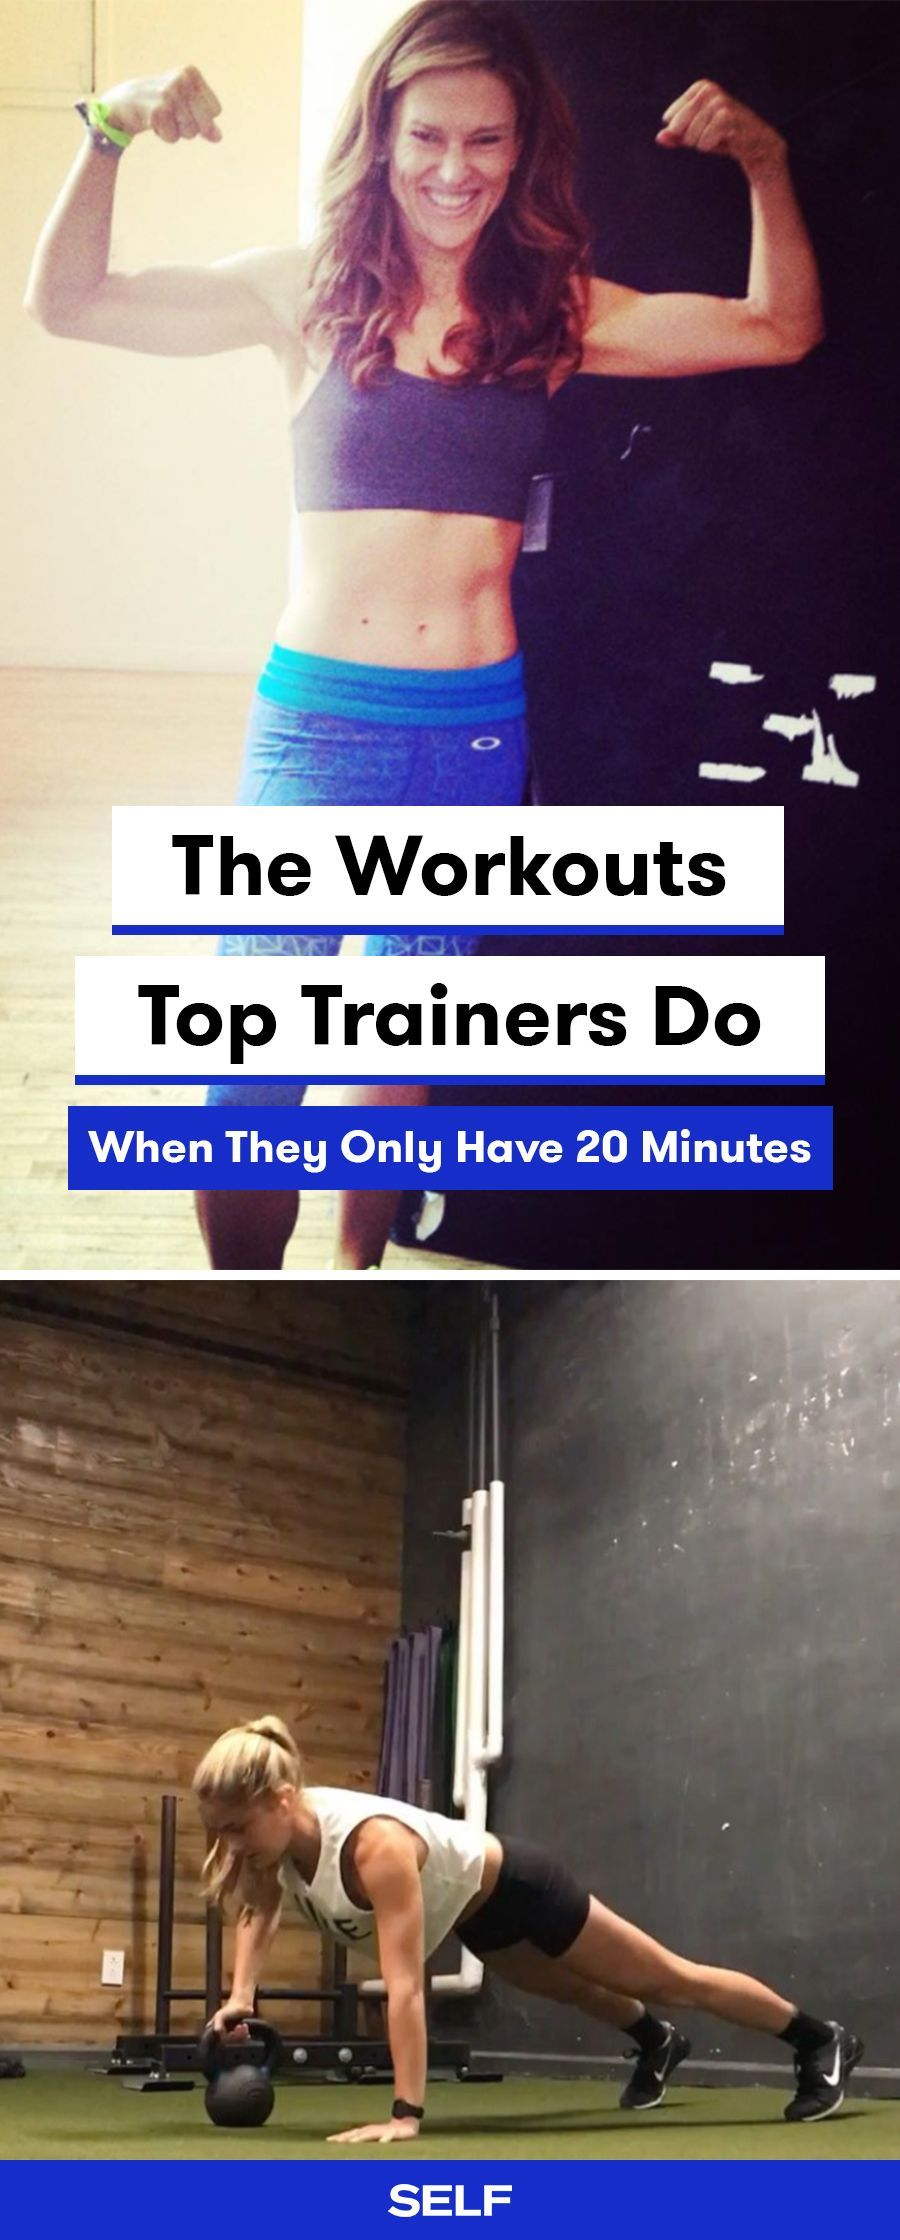 Personal trainers are busy too! They dont always have time